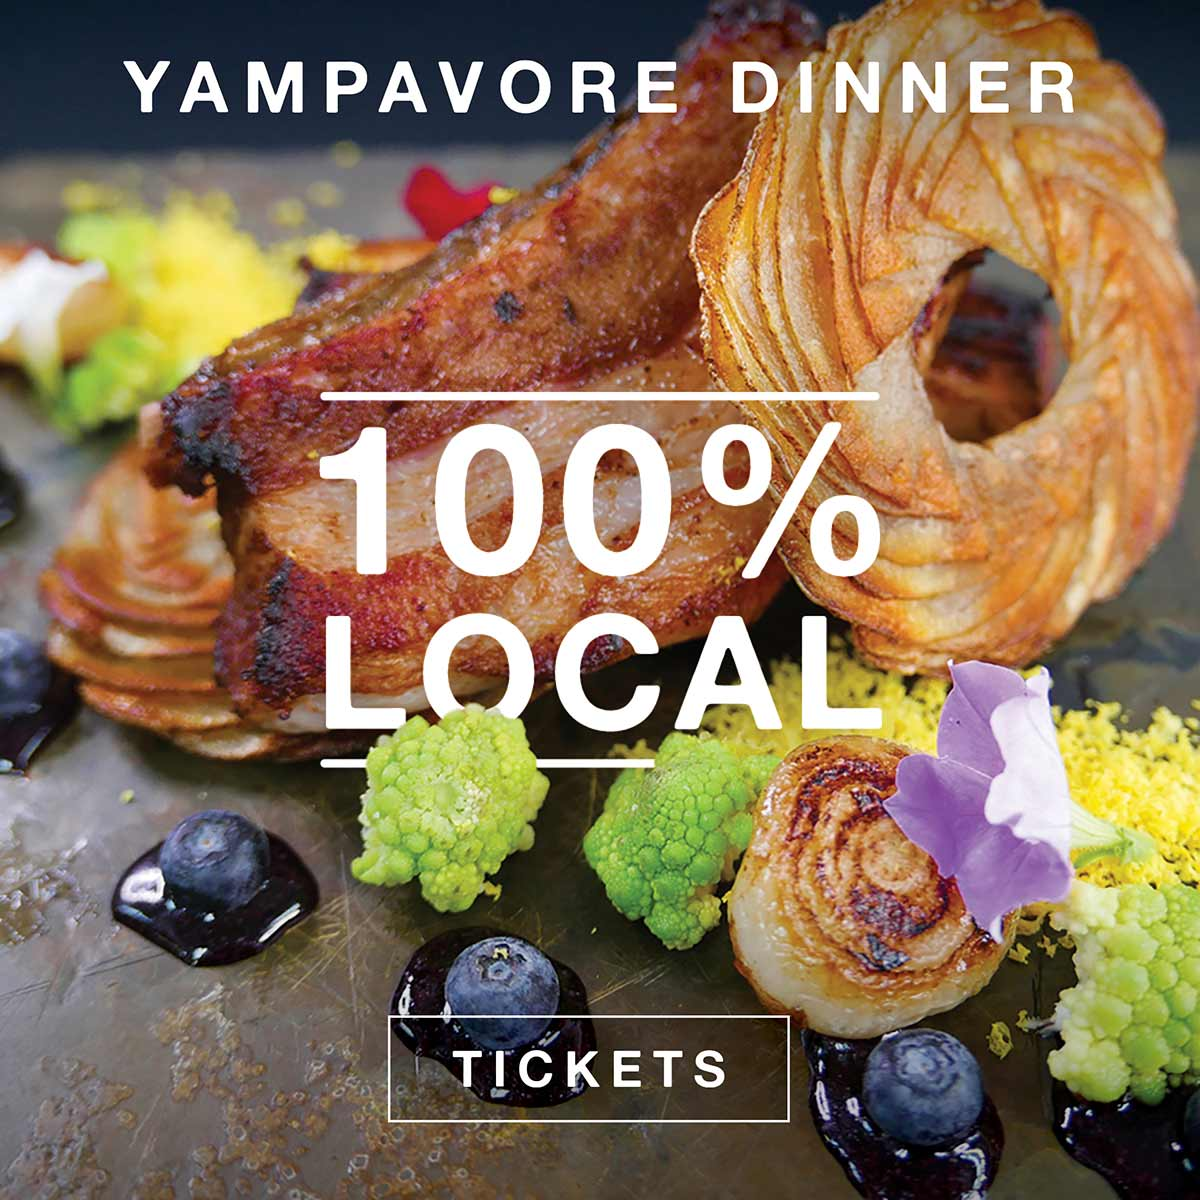 Harwigs Yampavore Dinner 100% Local Food CAA Buy Tickets